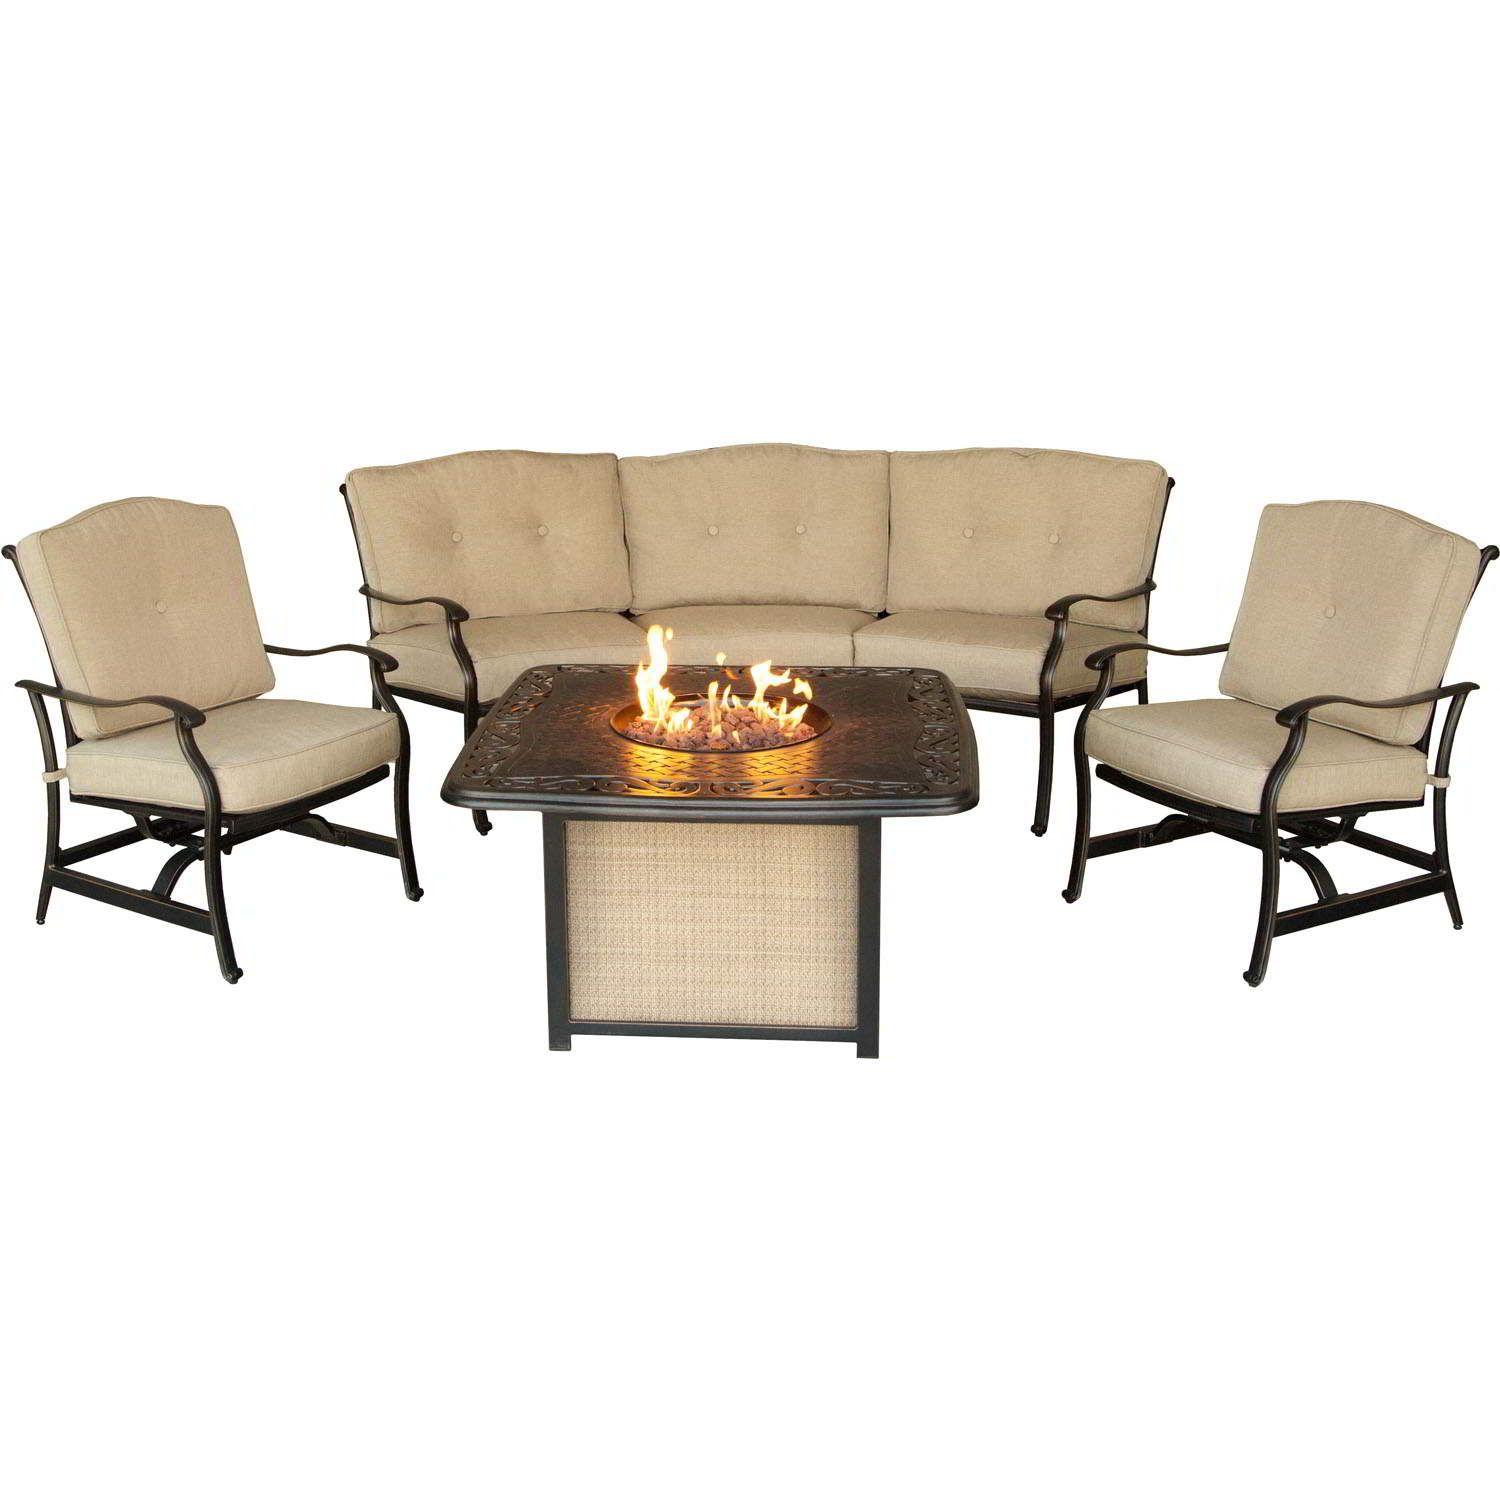 Traditions 4 Piece Chat Set With A Cast Top Fire Pit Outdoor  # Muebles Deurope Comedores